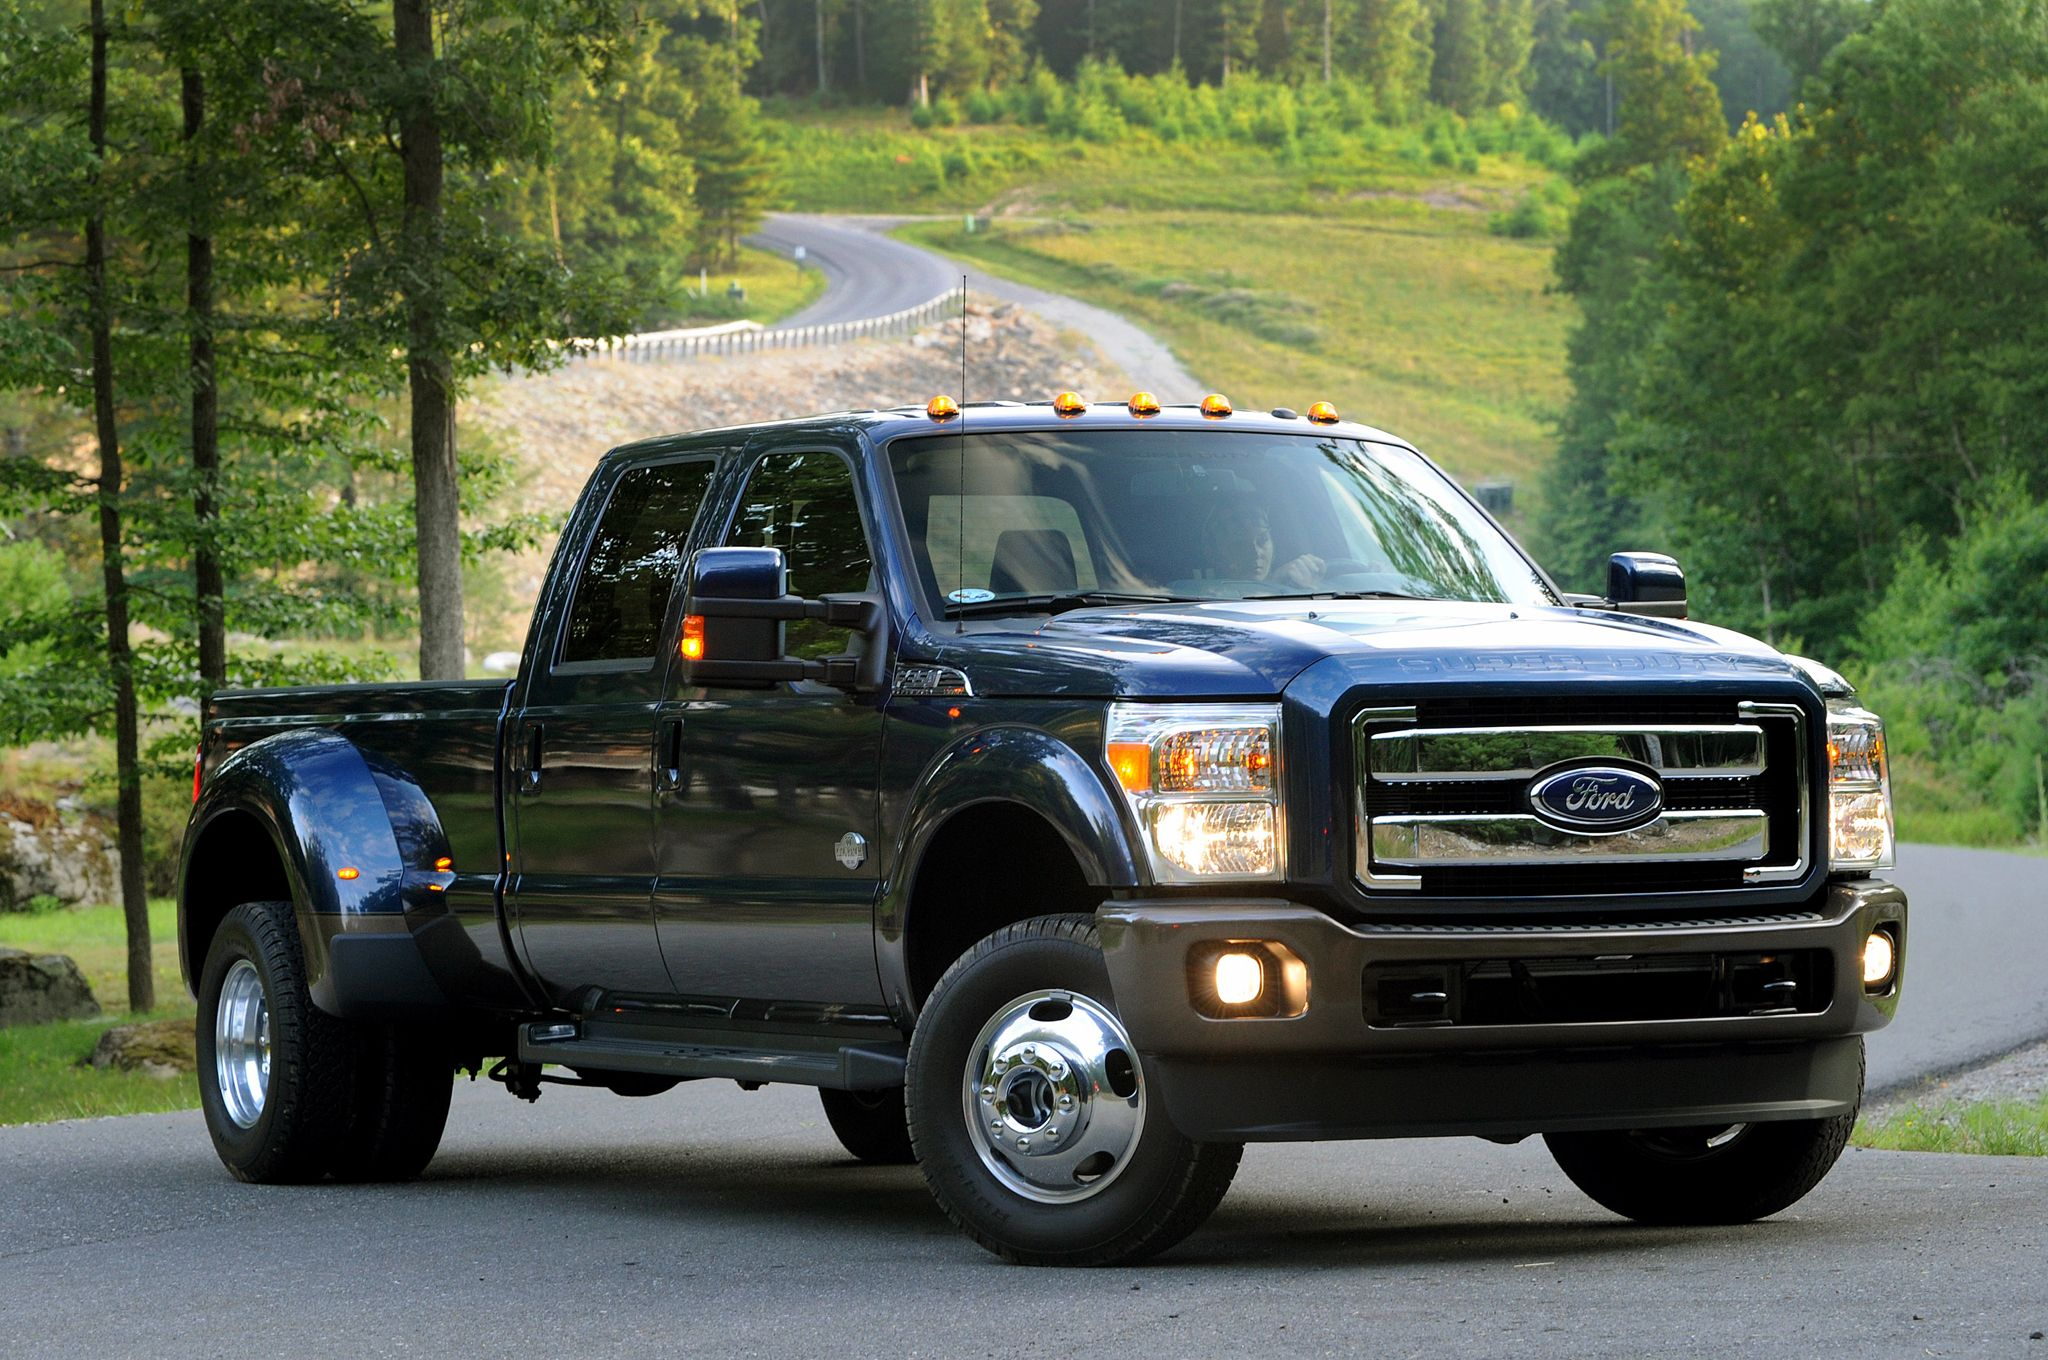 2015 ford f350 super duty king ranch tractors pinterest ford ford trucks and vehicle. Black Bedroom Furniture Sets. Home Design Ideas